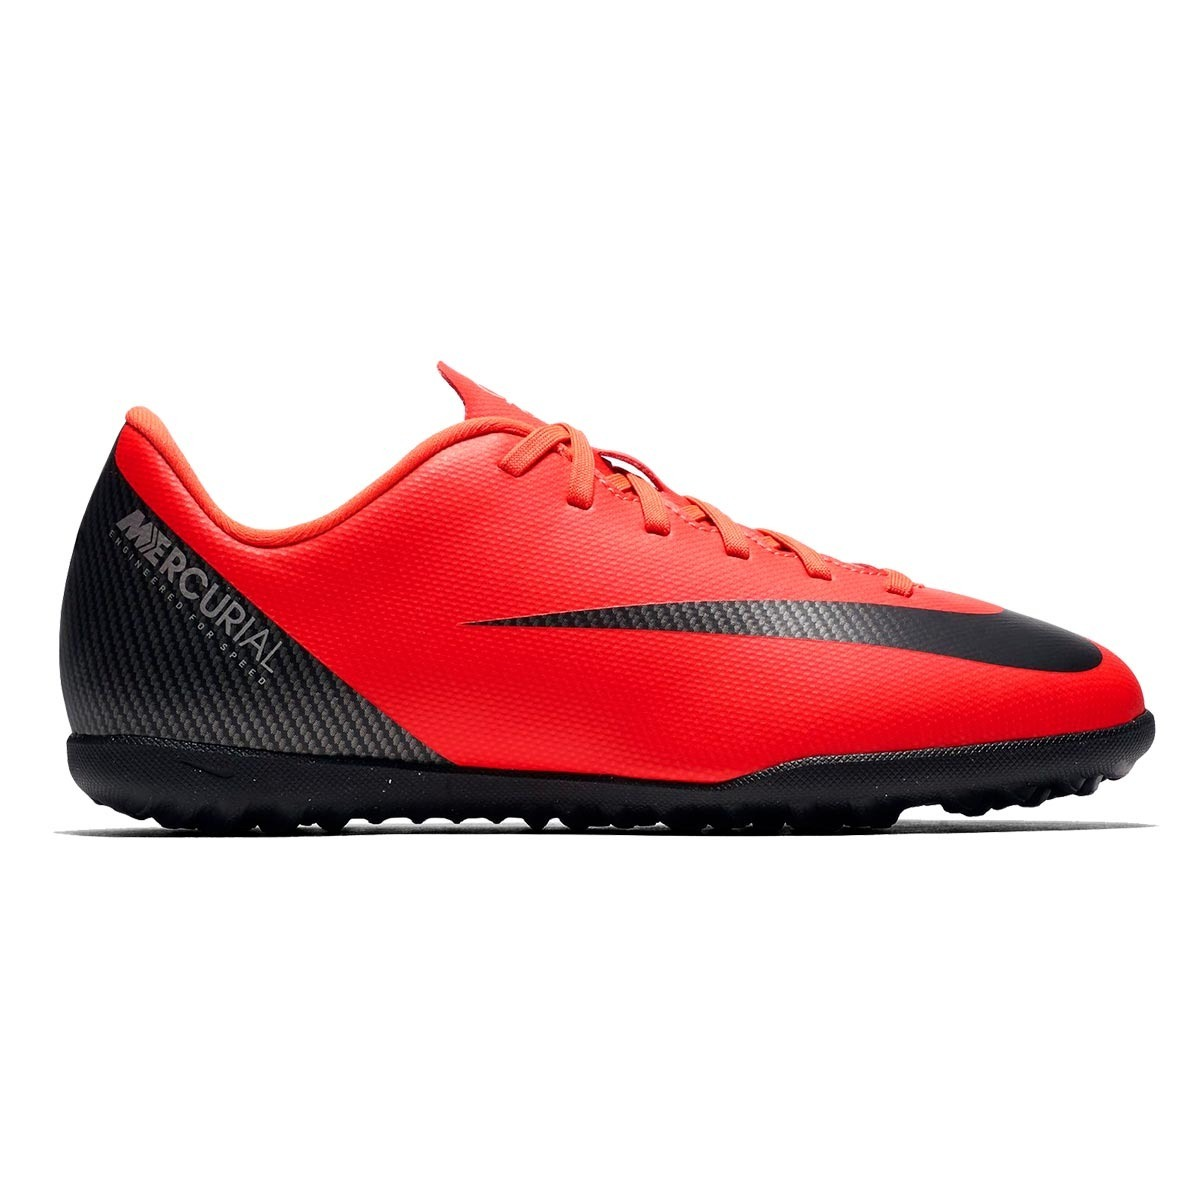 chuteira nike infantil jr vapor x 12 club gs cr7 tf society. Carregando  zoom. b80705c6c7169